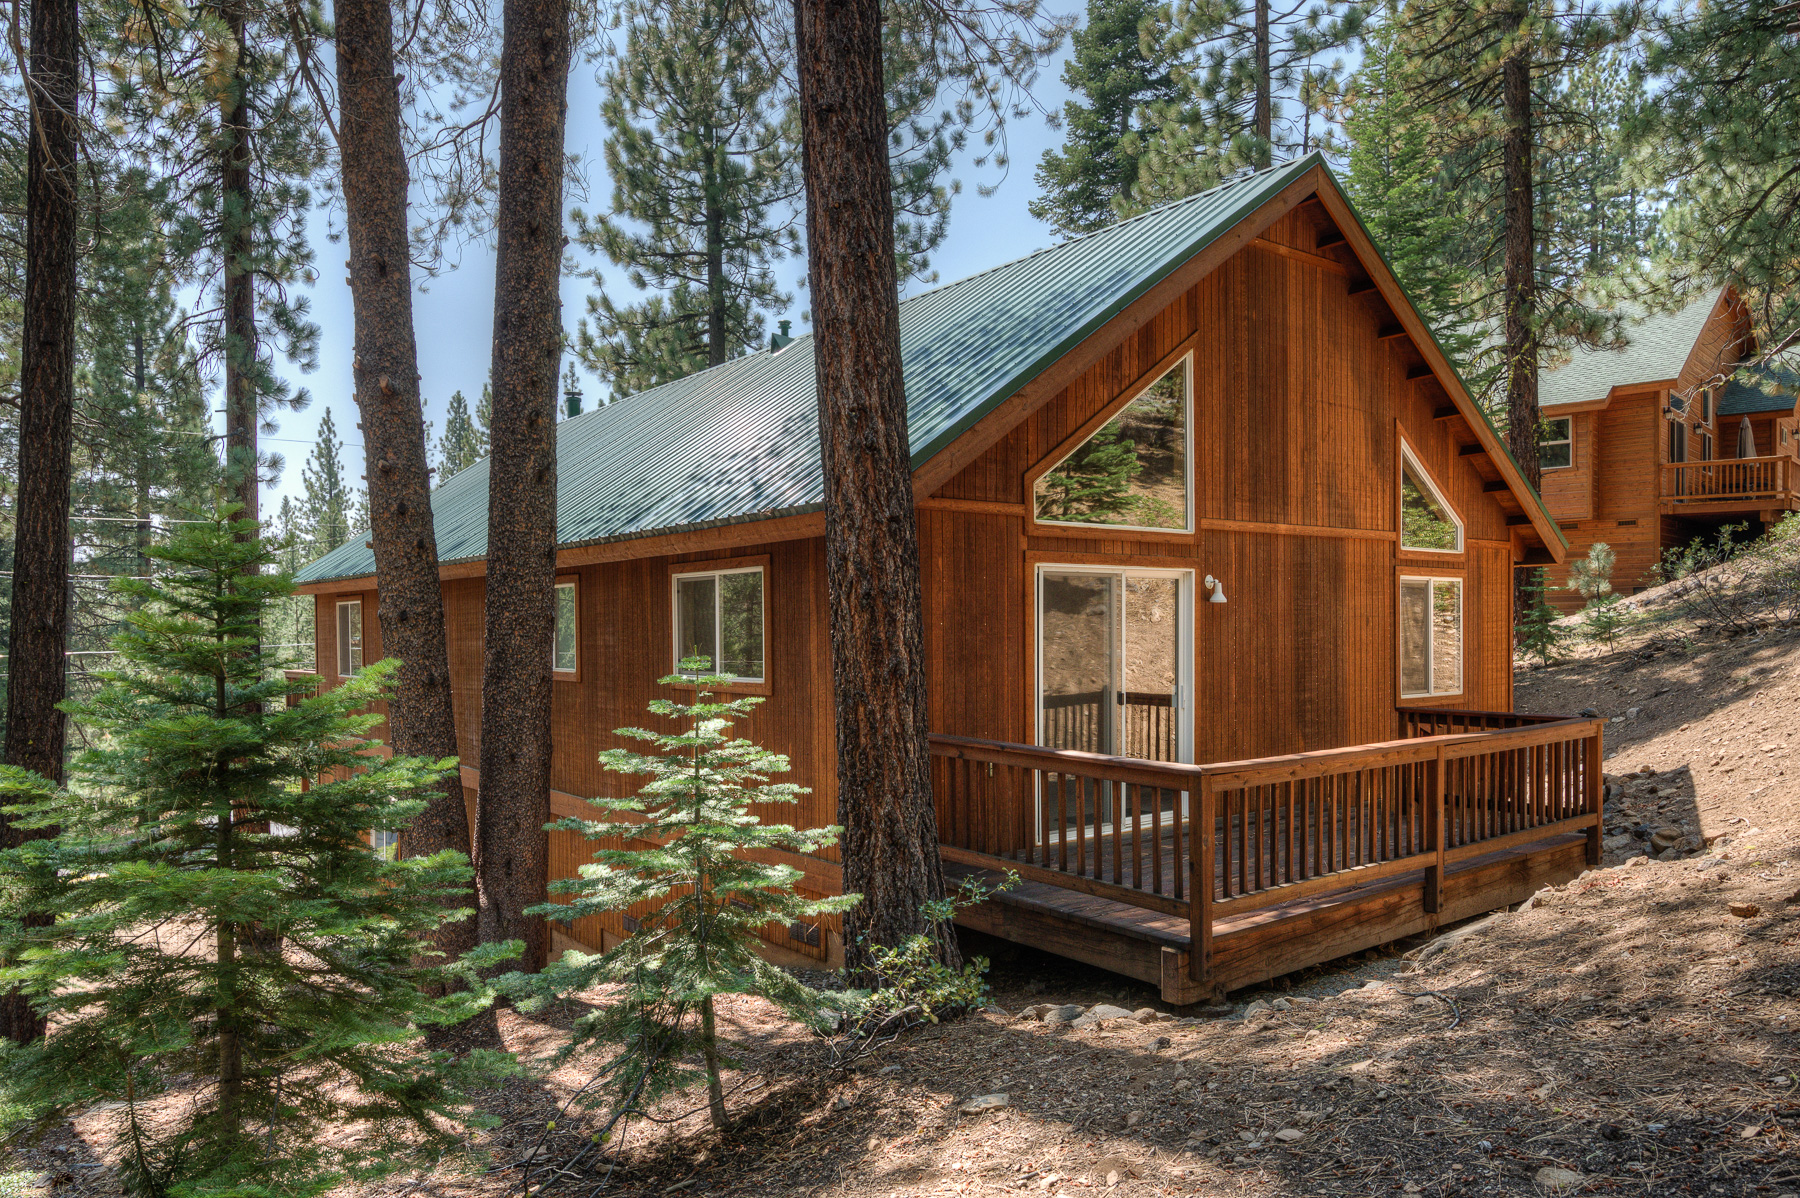 donner among ski tahoe redawning property truckee cabin charming the rental vacation cabins in pines